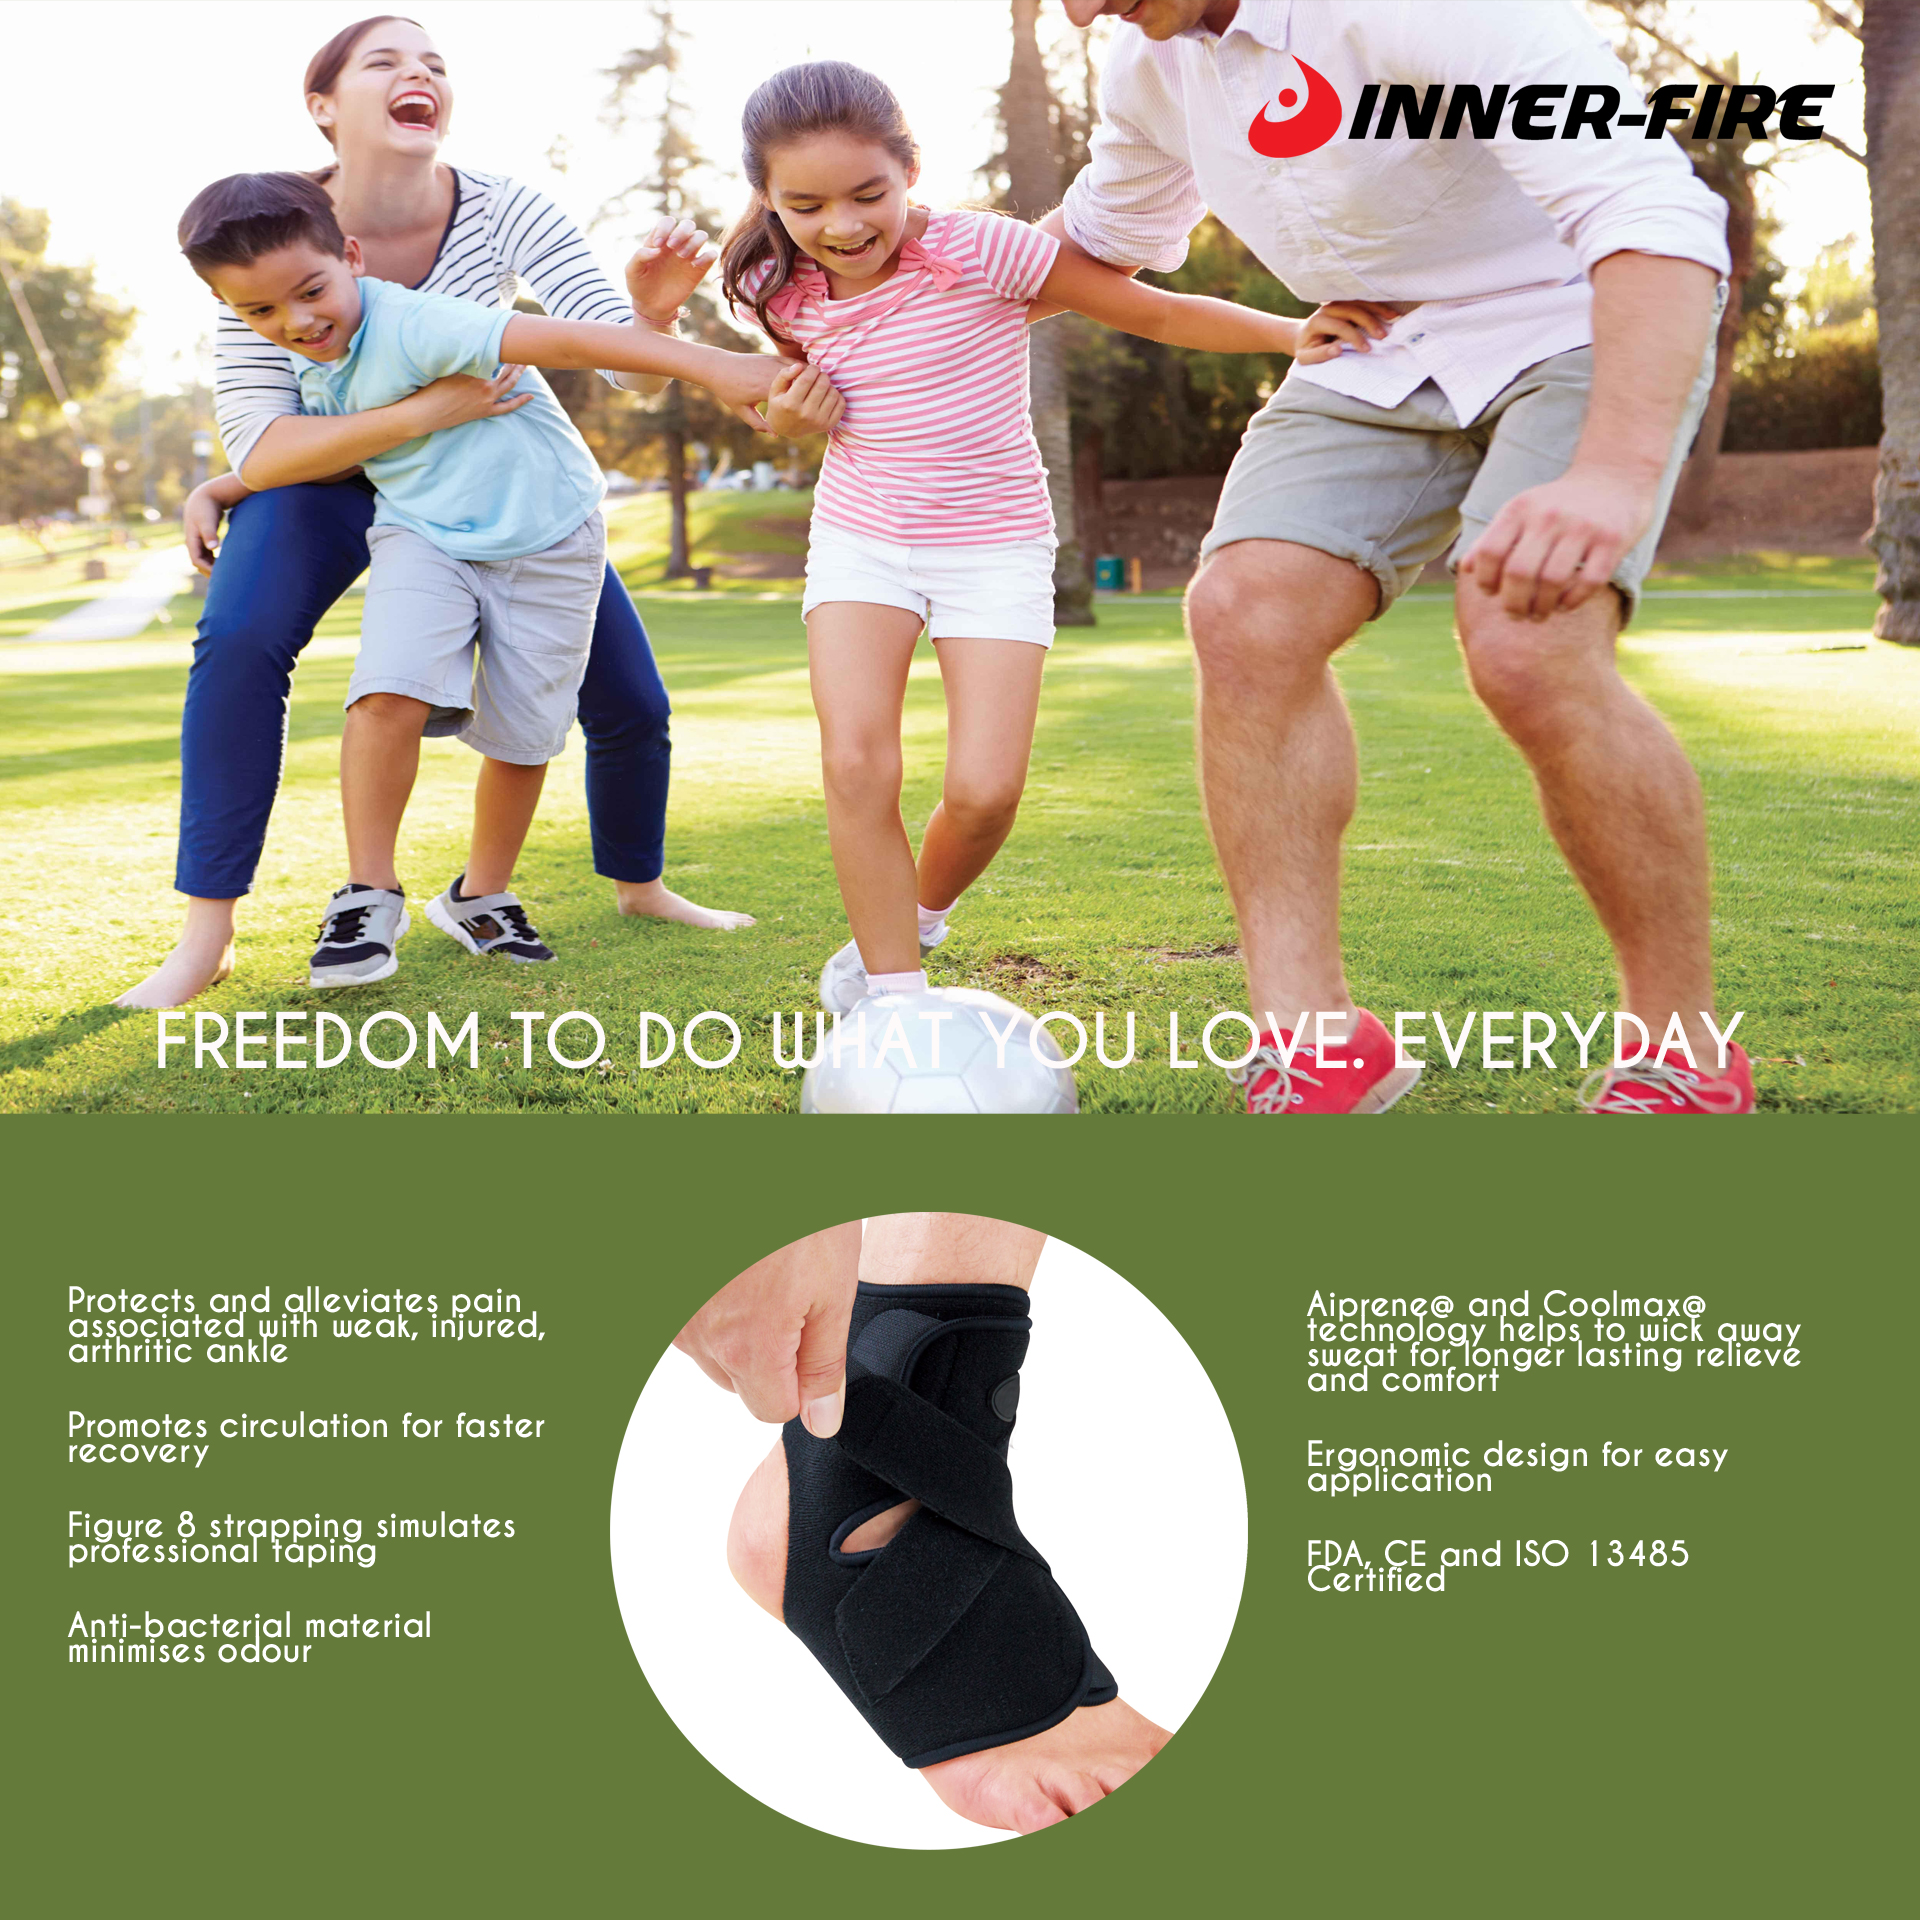 Inner-Fire Advanced Ankle Brace